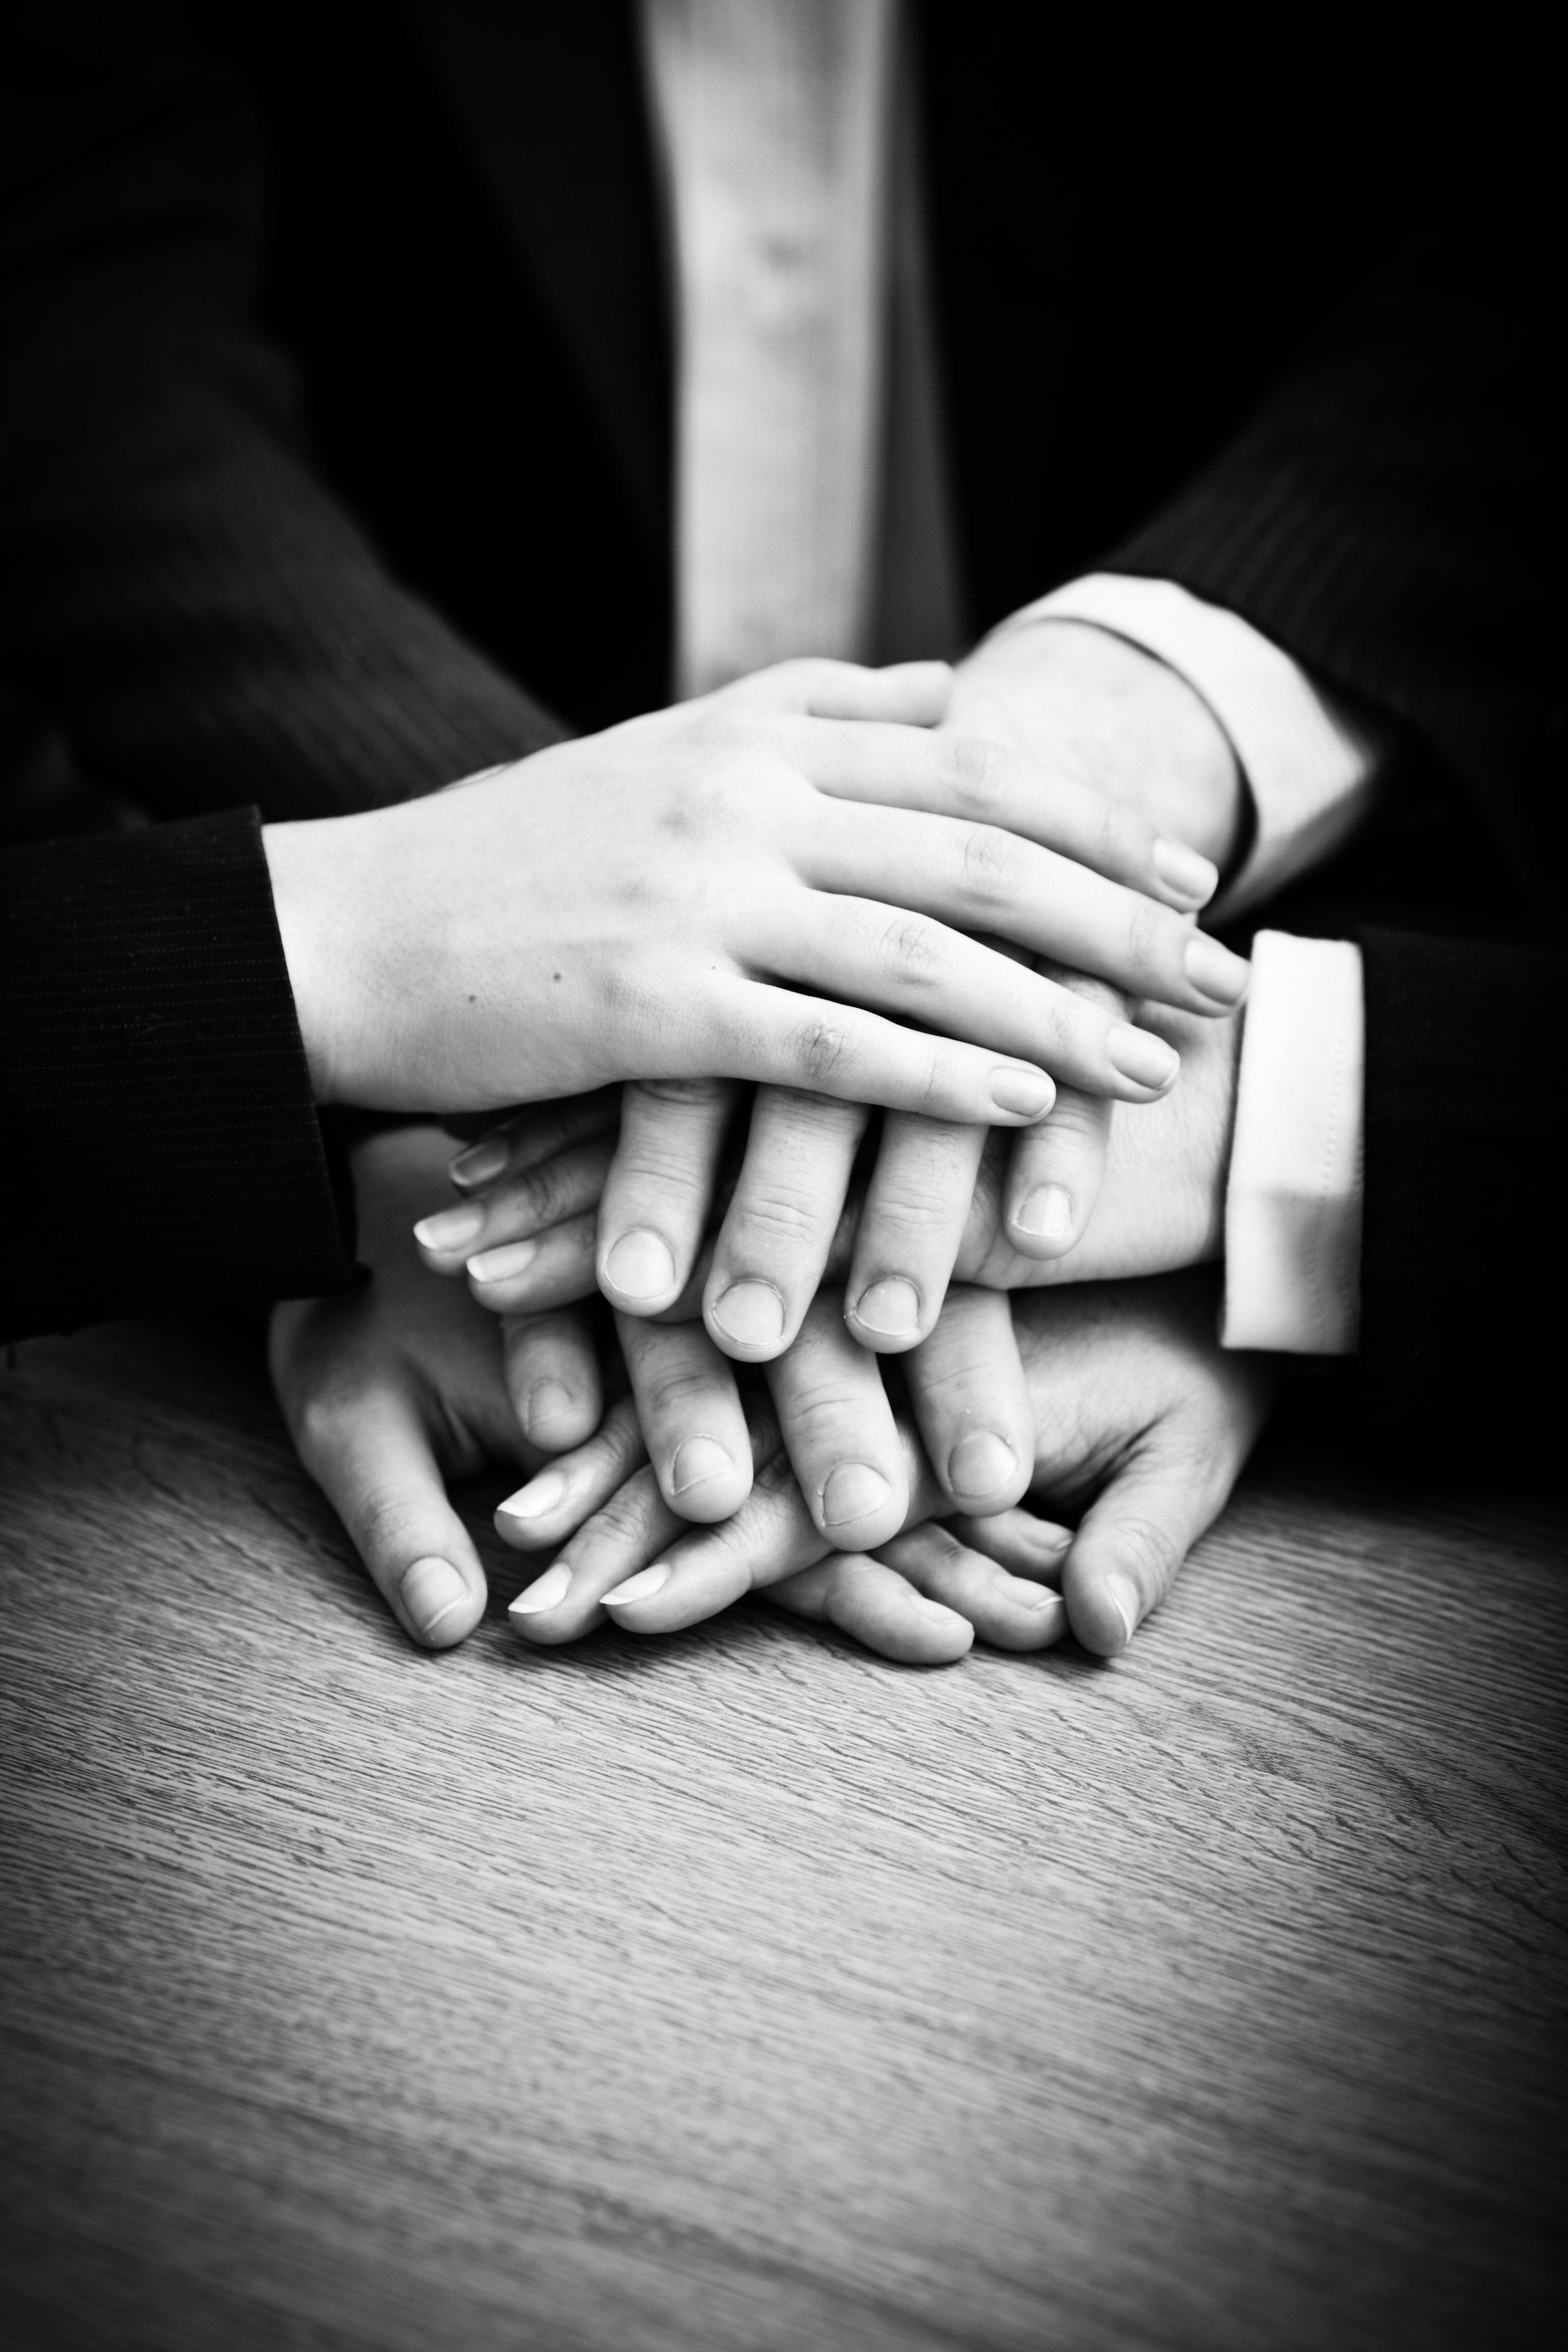 Image of business partners hands on top of each other symbolizing comp